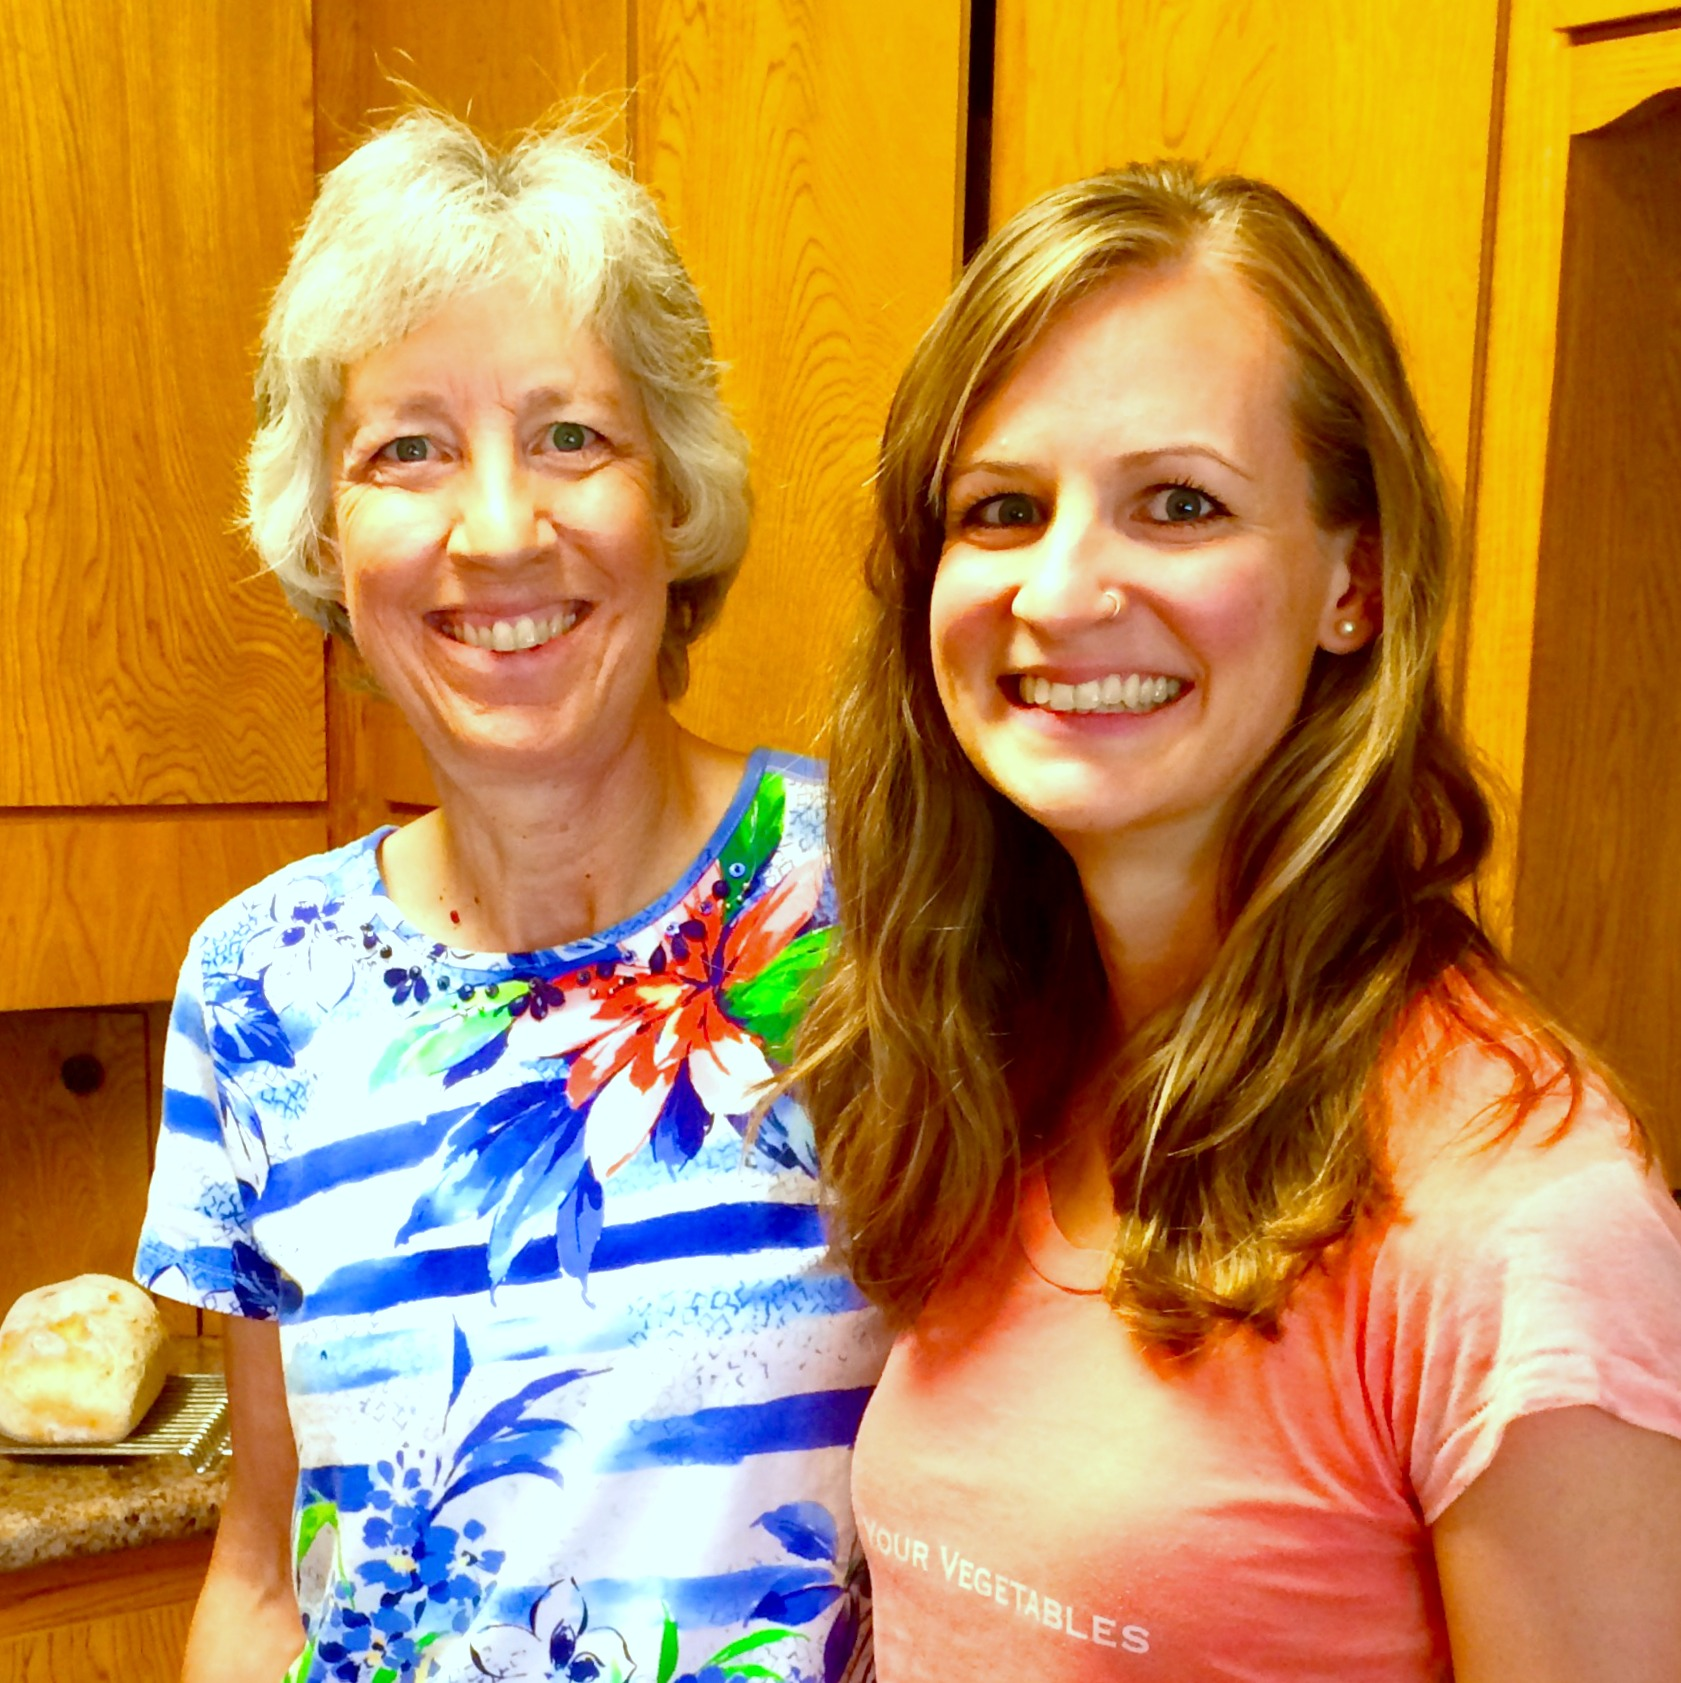 My mom and me, a couple of weeks ago. Yes, that's a loaf of fresh bread behind her.